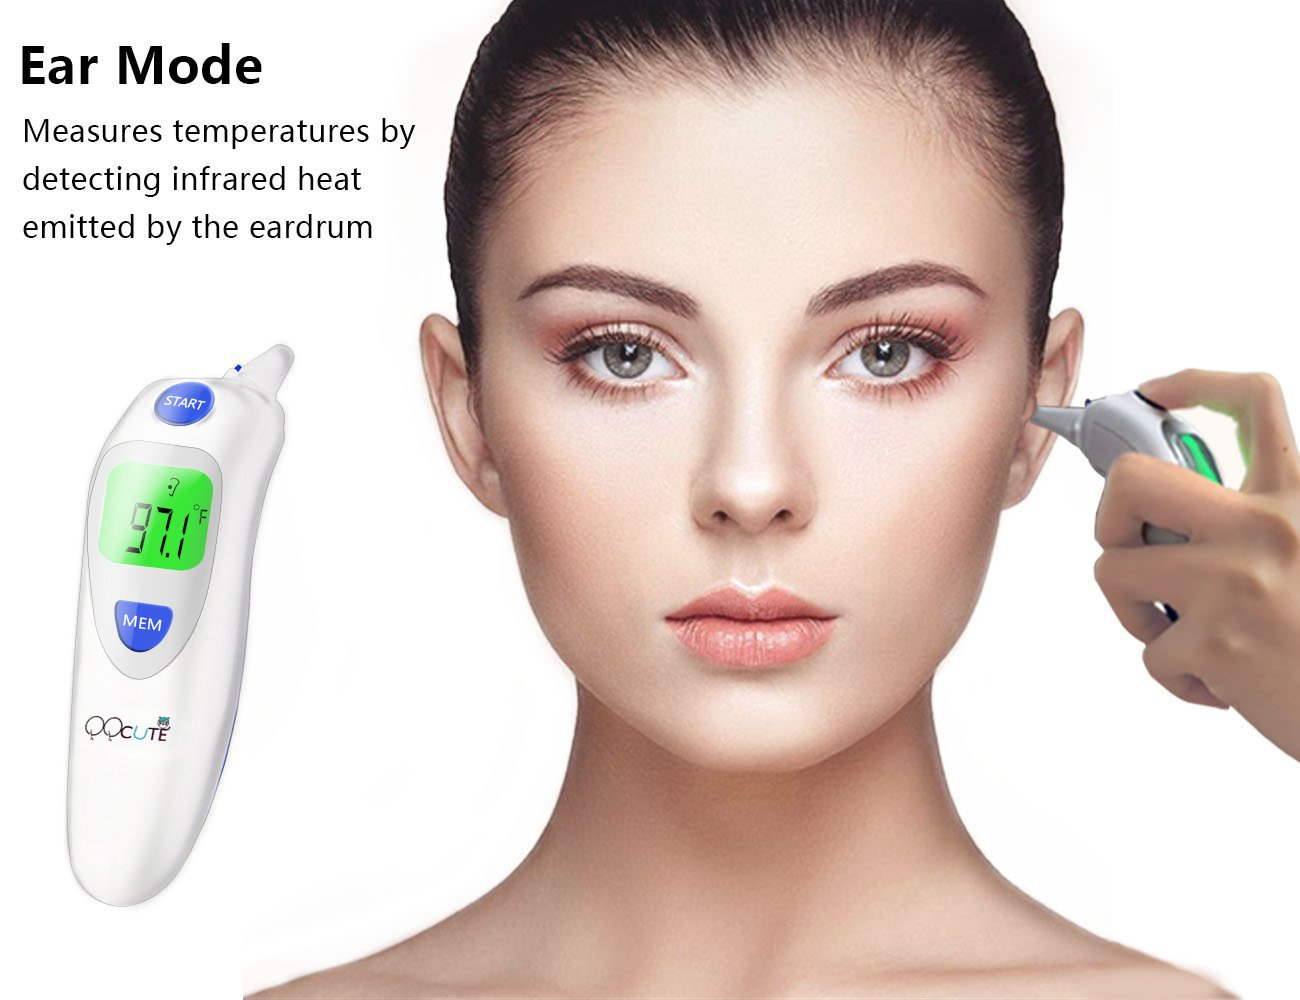 Digital Infrared Baby Forehead Thermometer with Ear Function More Accurate Medical Fever Body Basal Thermometers Suitable for Infant Kid Adult - FDA and CE Approved by QQCute (Image #2)